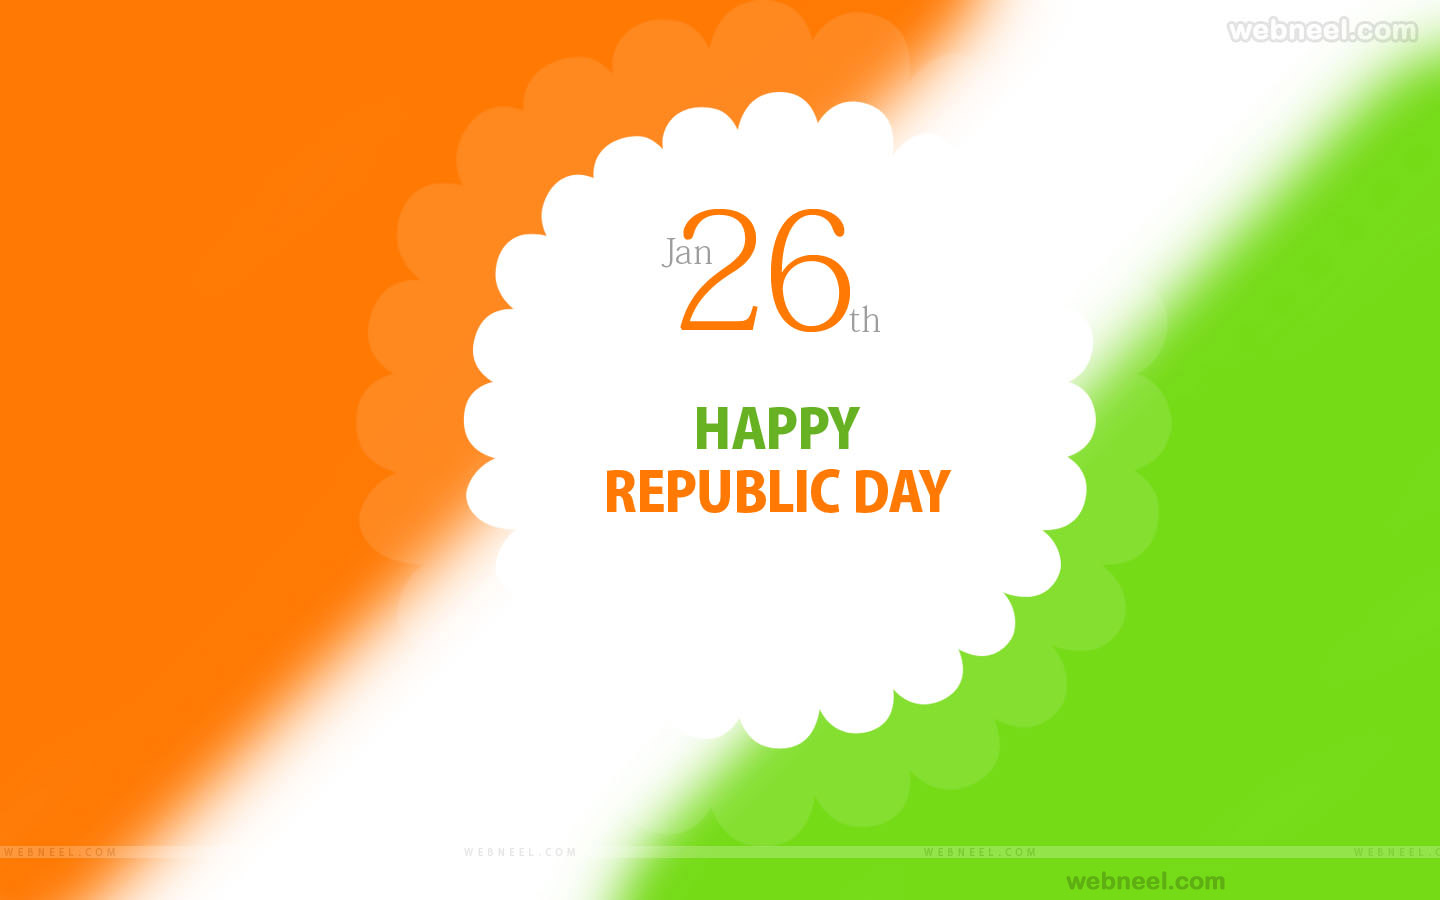 republic day wishes